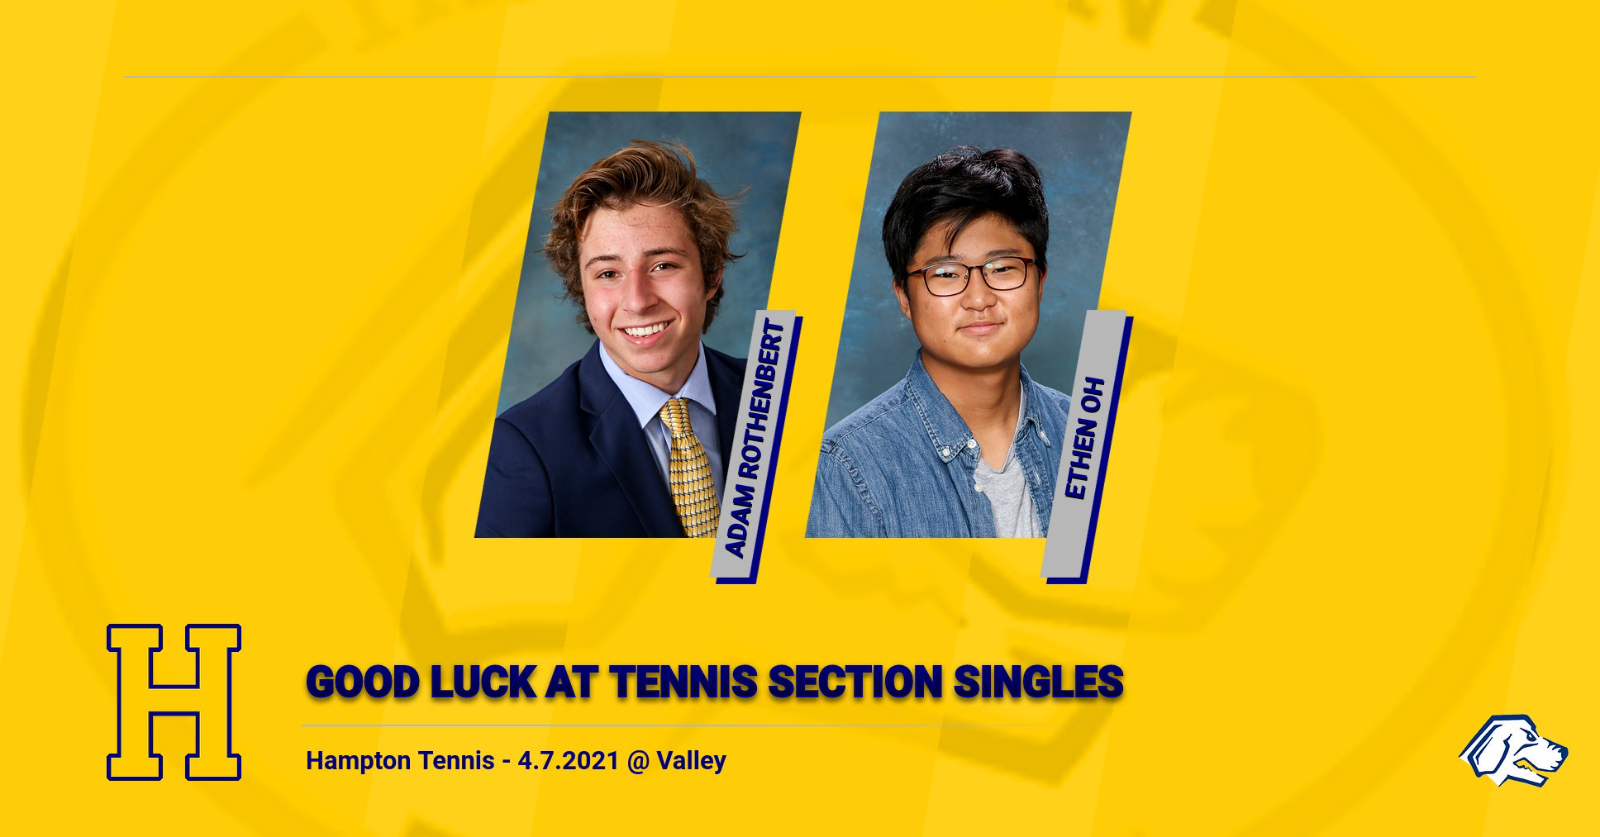 Tennis Section Singles